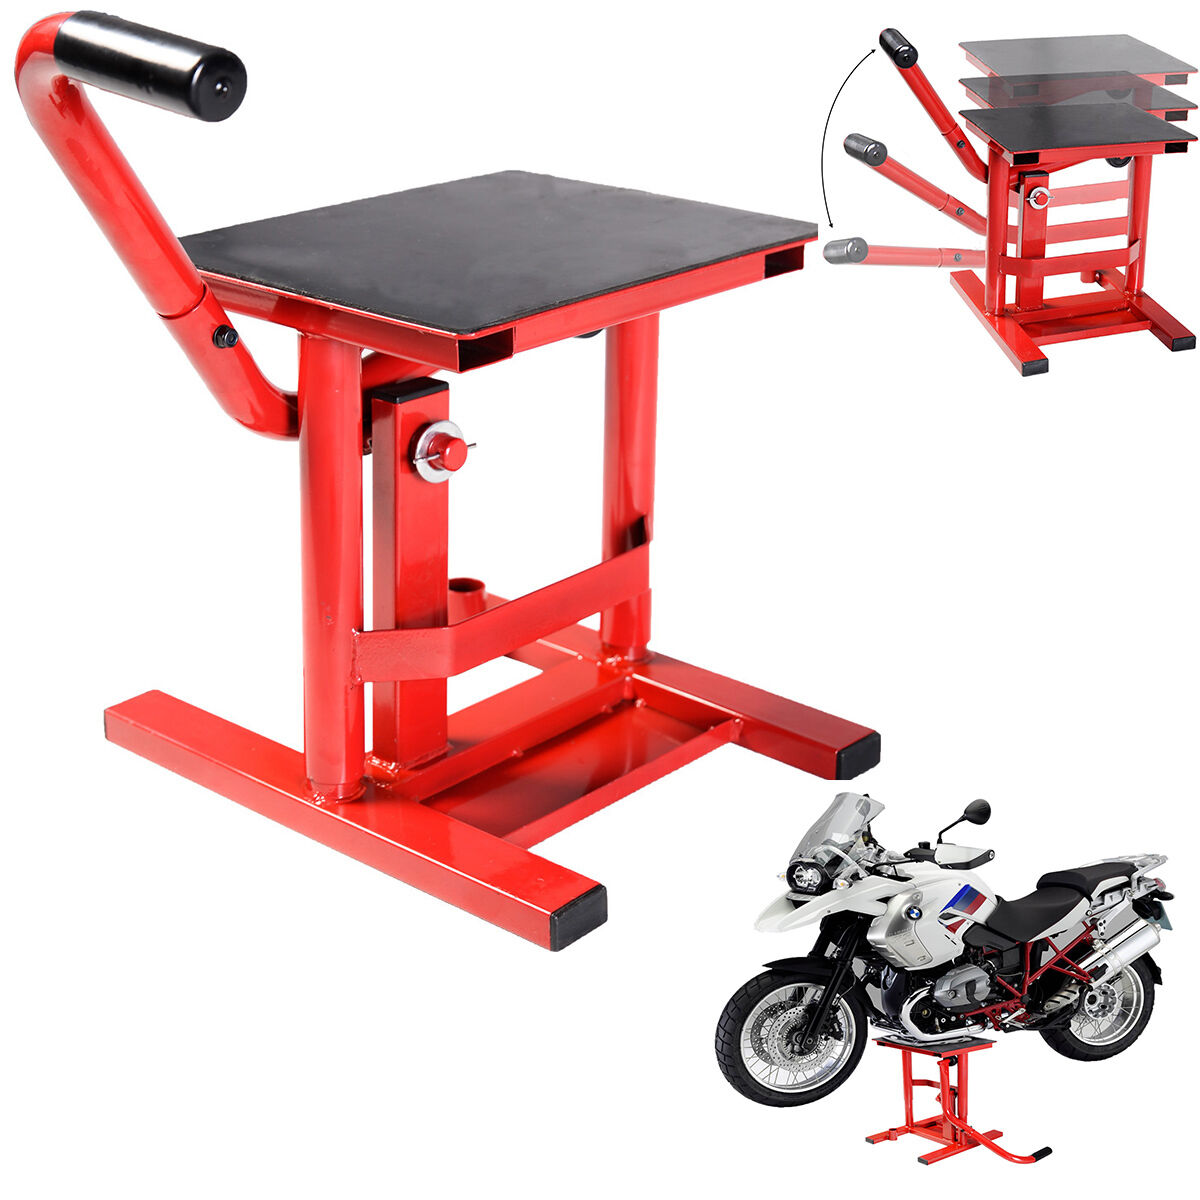 dirt bike motocross motorcycle lift stand moto x mx maintenance steel enduro lifts jacks. Black Bedroom Furniture Sets. Home Design Ideas